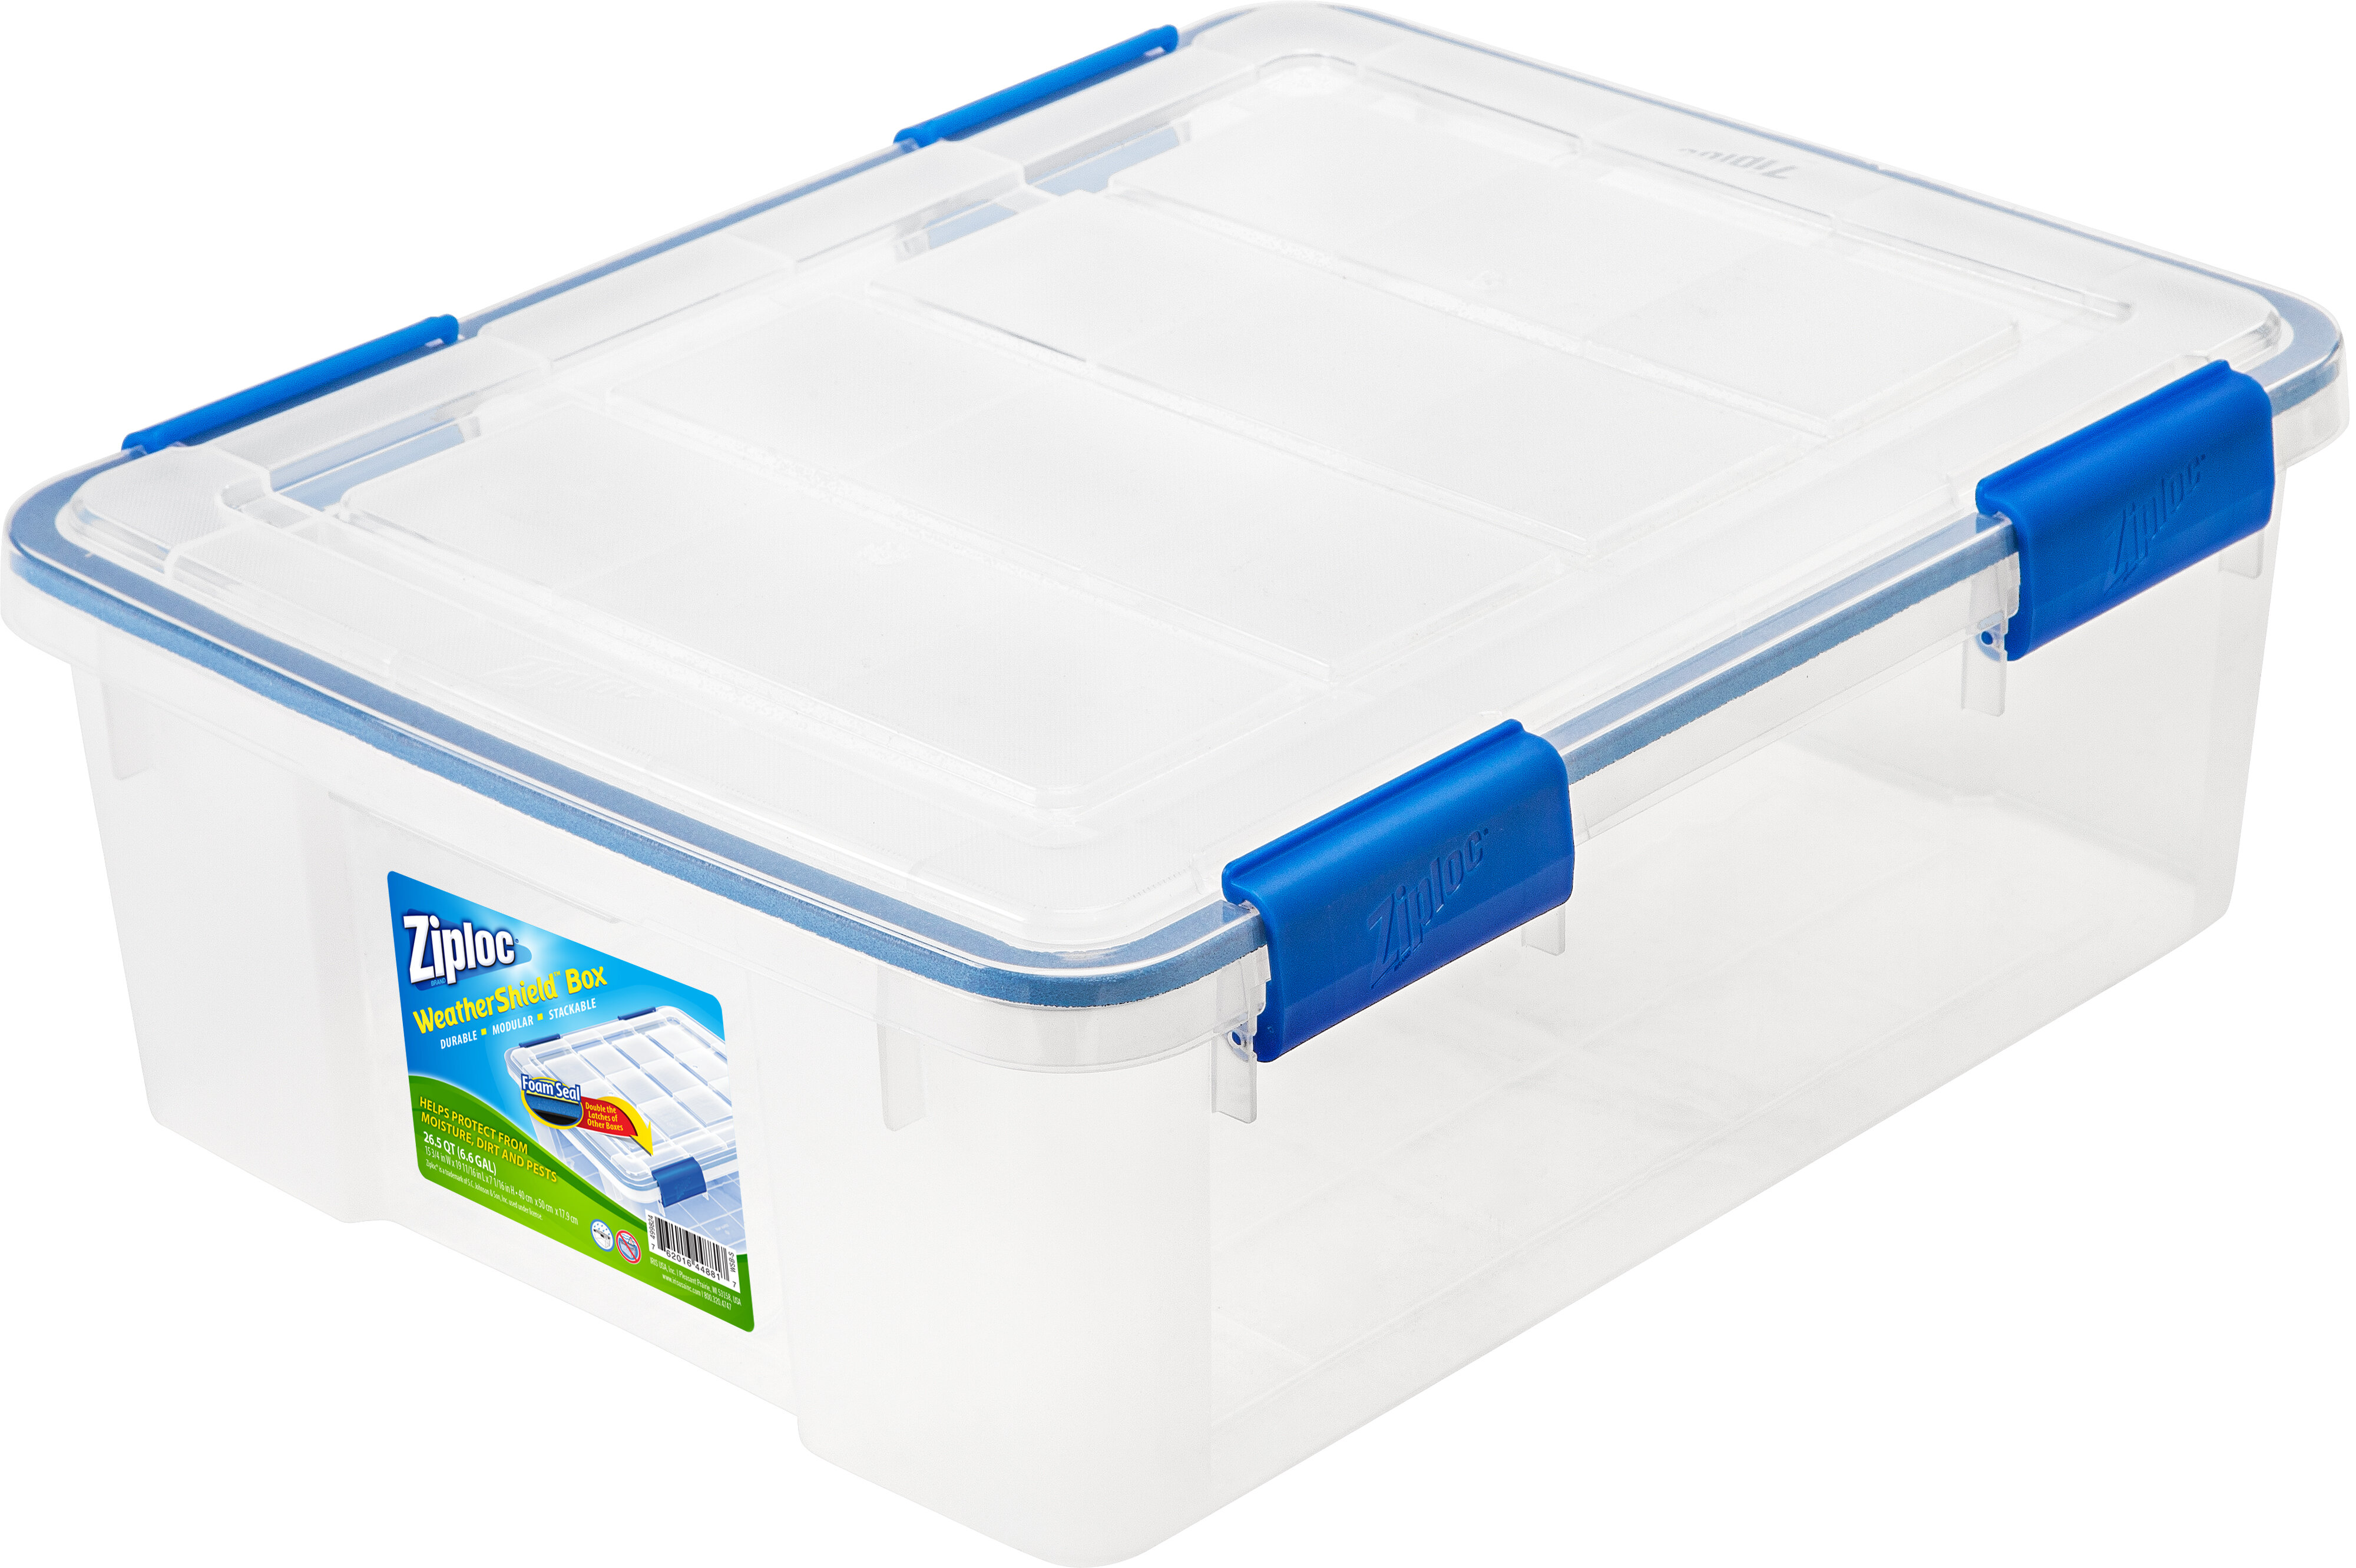 Genial ZIPLOC WeatherShield Storage Box U0026 Reviews | Wayfair